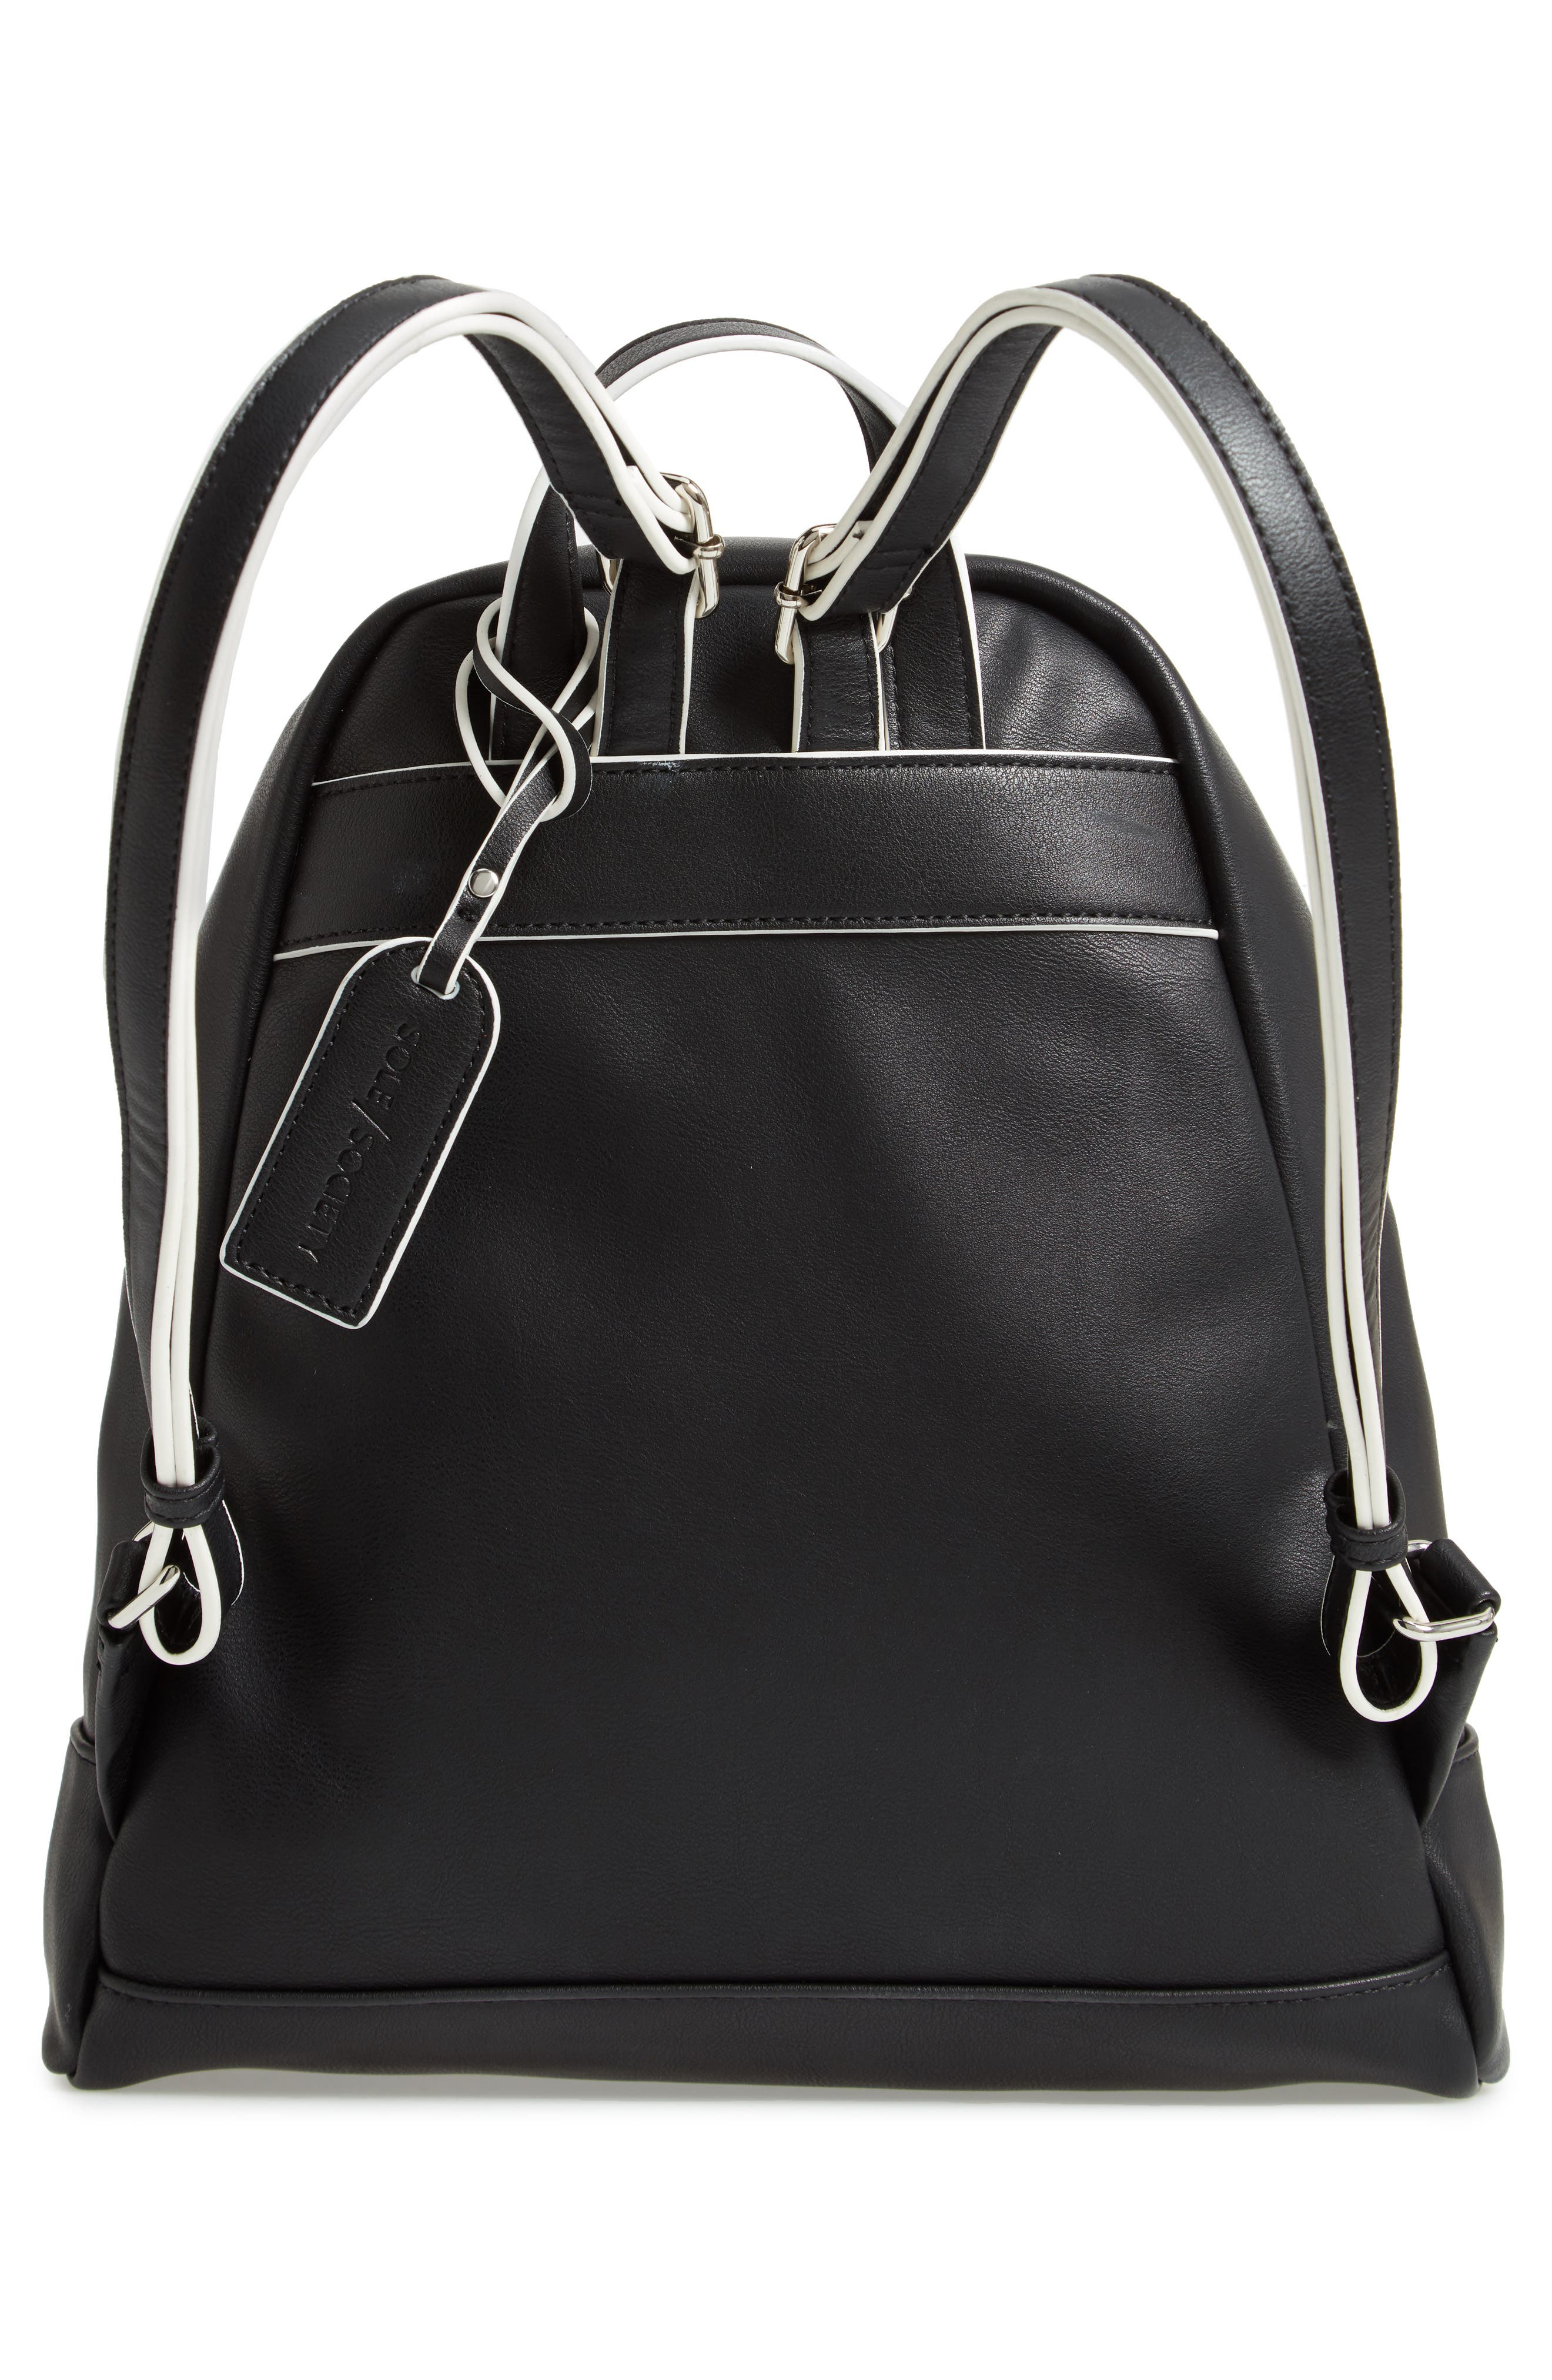 SOLE SOCIETY,                             Haili Faux Leather Backpack,                             Alternate thumbnail 3, color,                             001